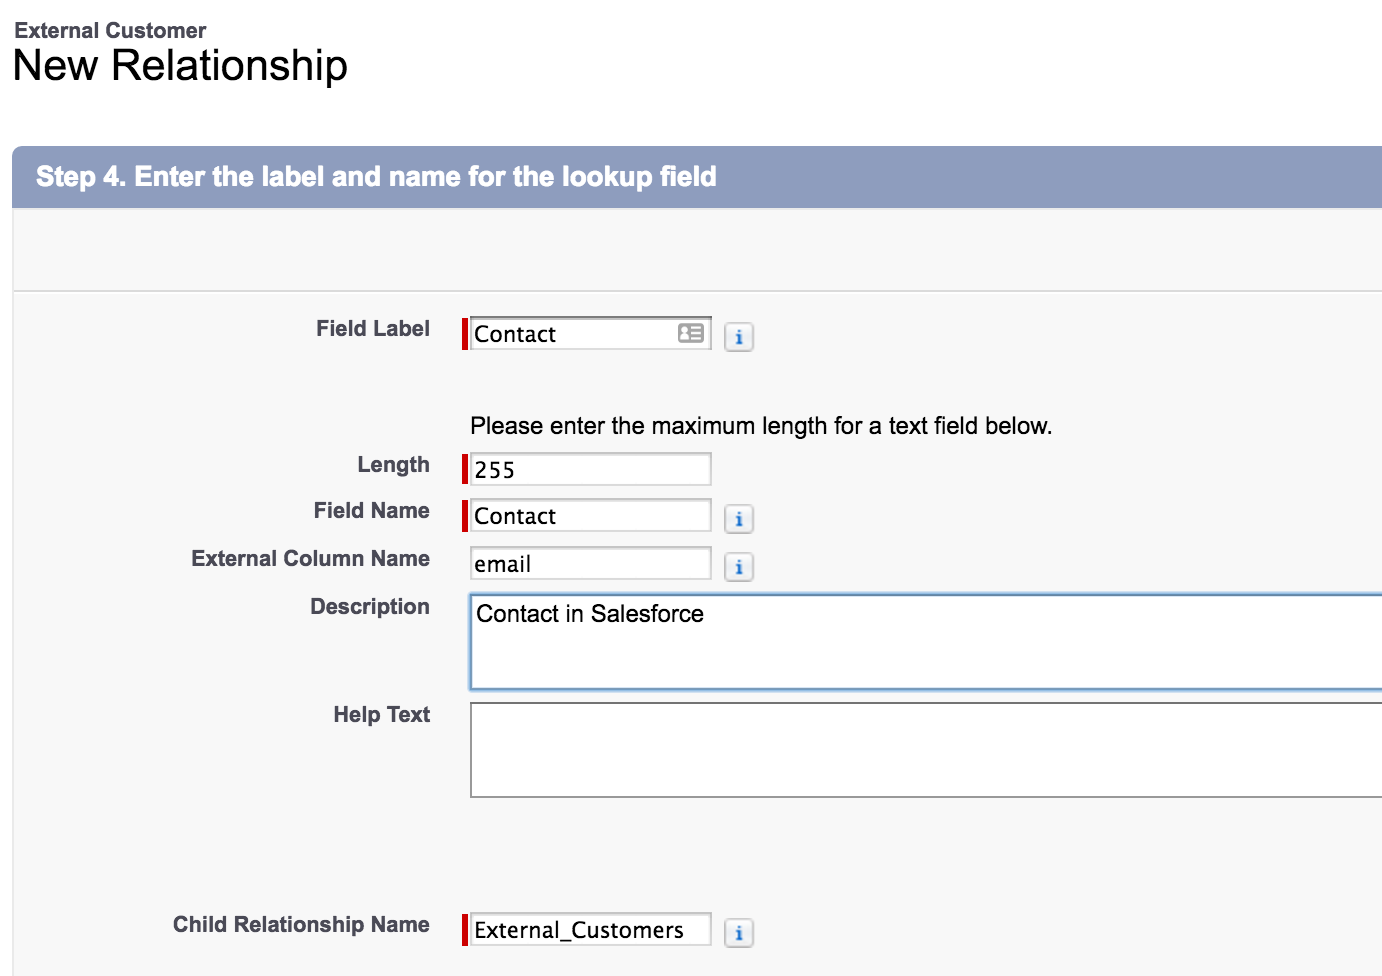 Salesforce UI - new relationship, step 4: name of lookup field